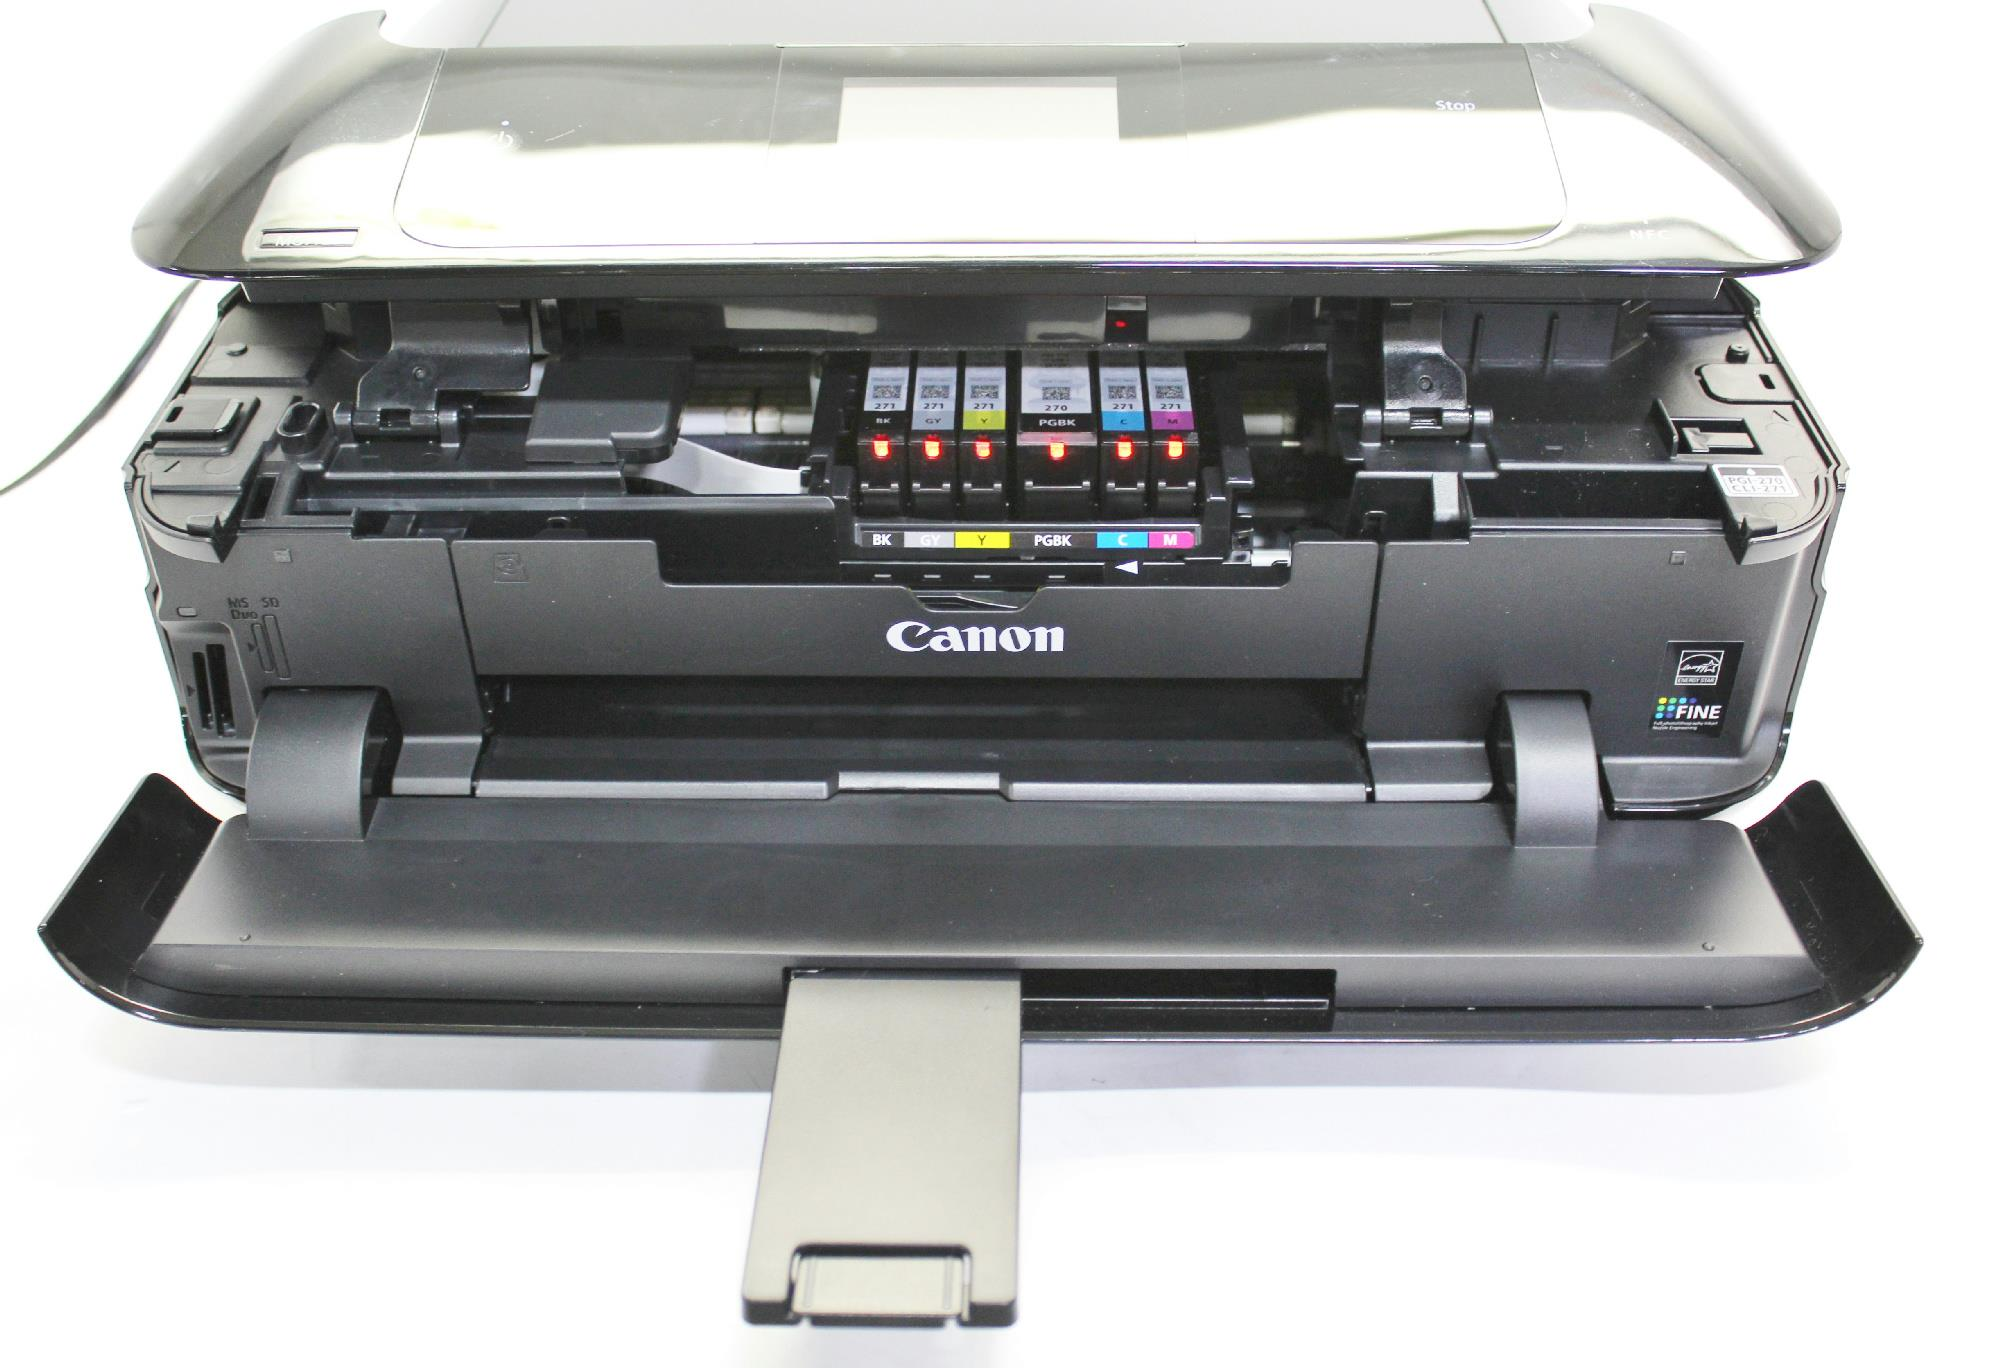 Canon pixma mg7720 wireless inkjet photo all in one for Canon printer templates